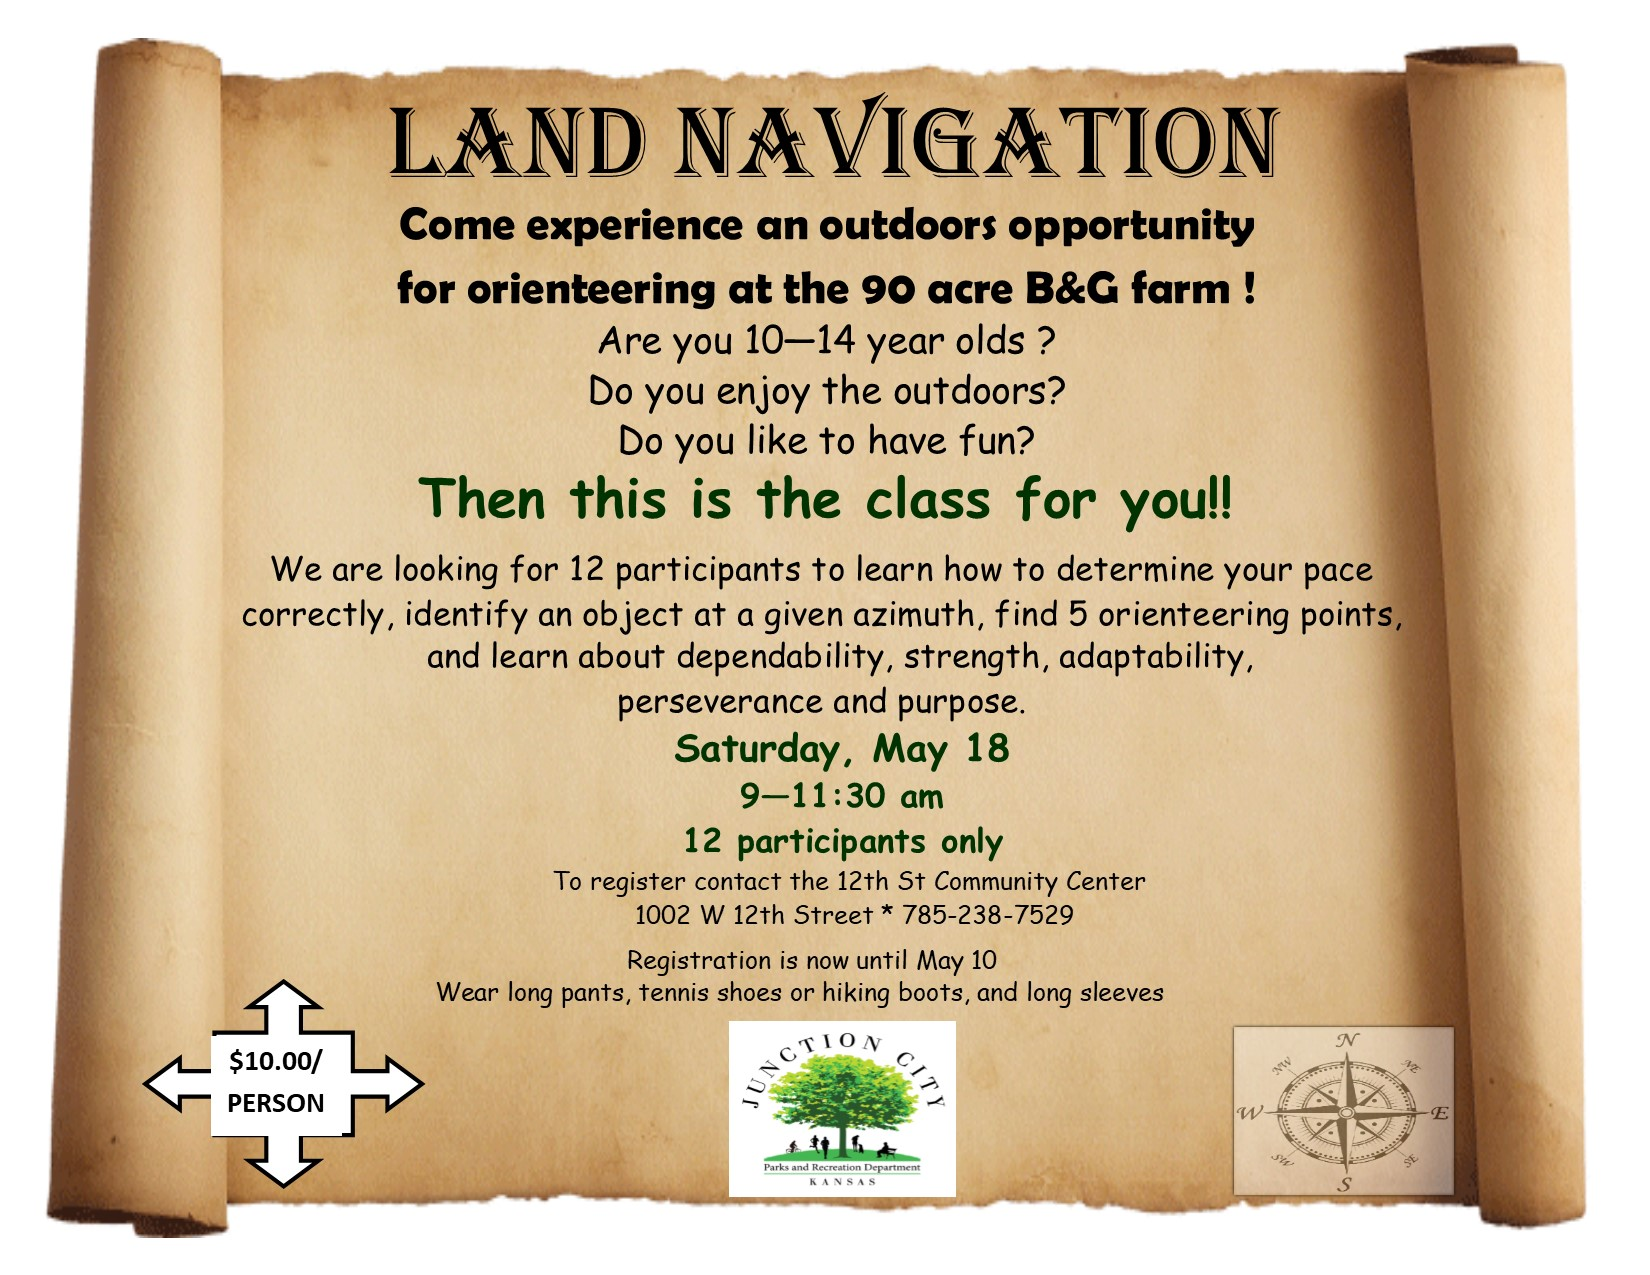 Flyer of Land Navigation event Saturday, May 18 9-11:30 AM 12 participants only To register, contact the 12th St Community Center 1002 W 12th Street 785-238-7529